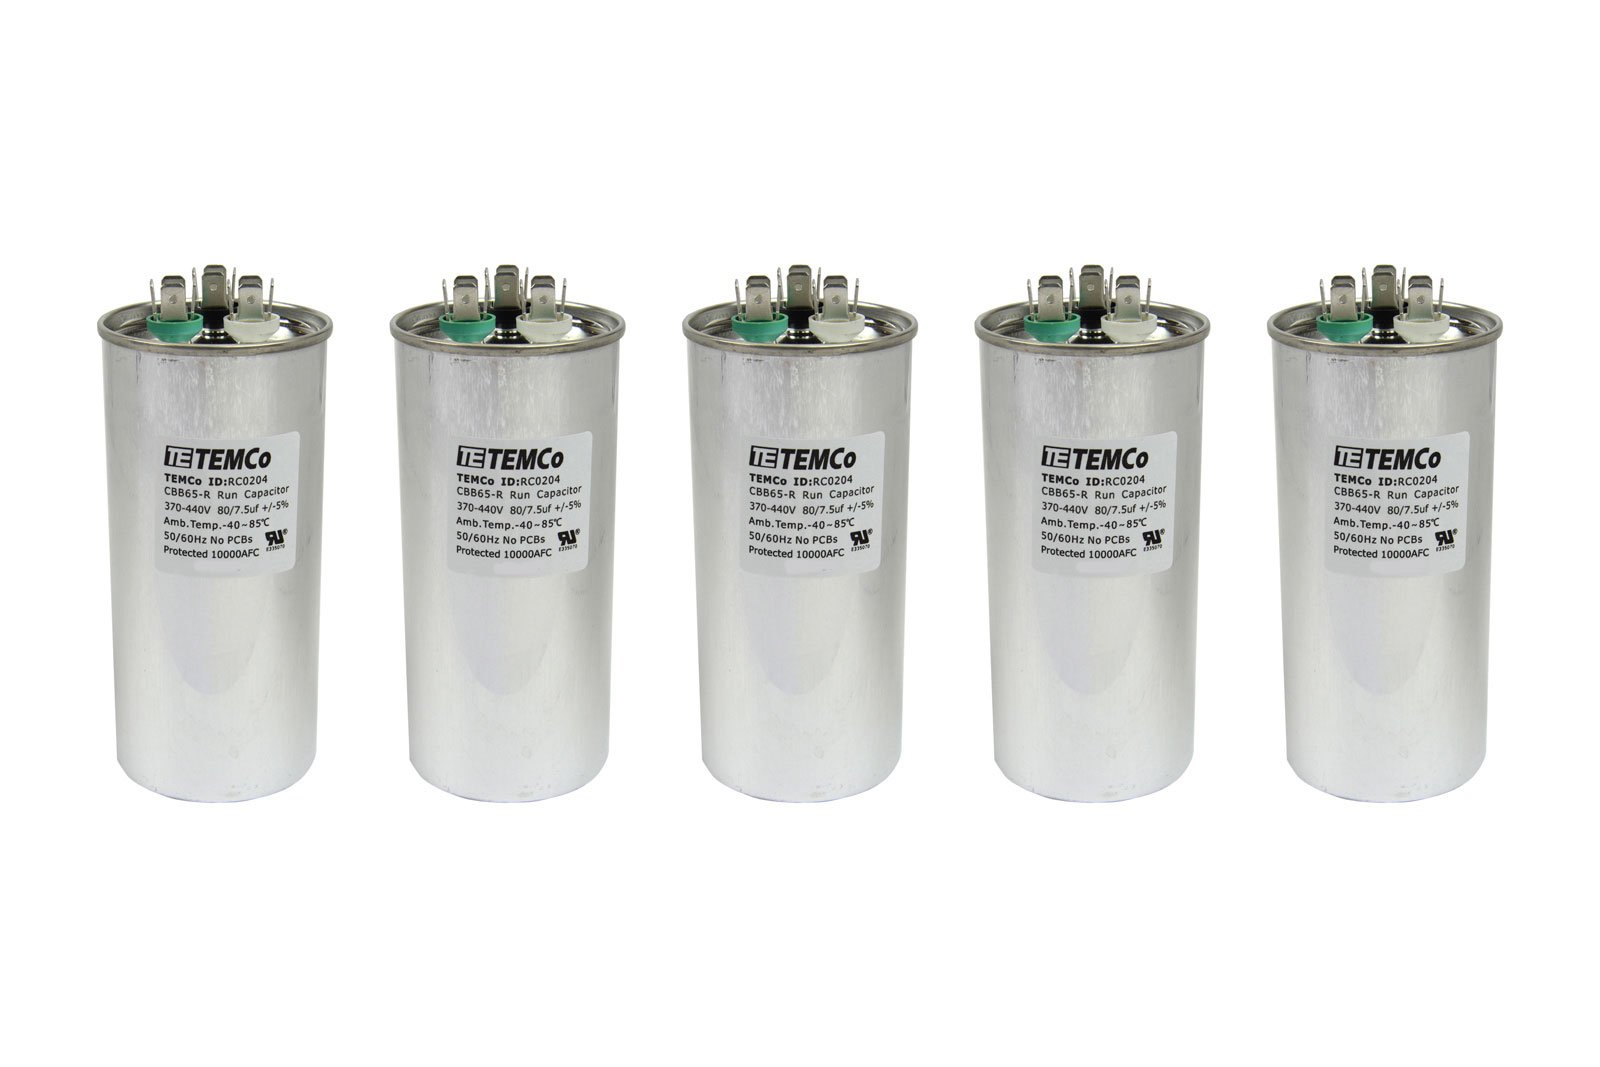 TEMCo 5 LOT Dual Run Capacitor RC0205-80/7.5 mfd 370 V 440 V VAC volt 80+7.5 uf AC Electric Motor HVAC